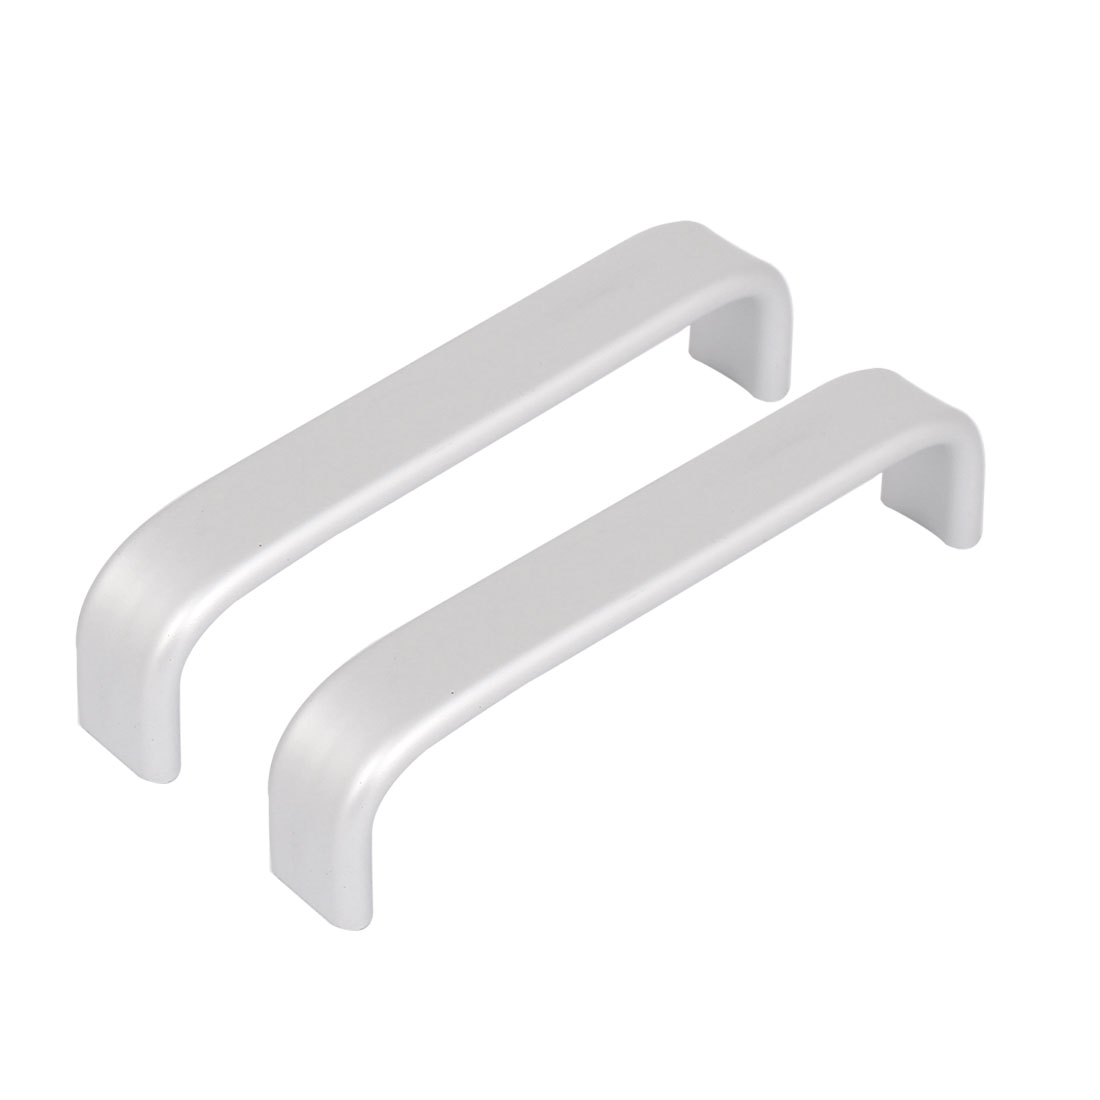 2Pcs Aluminium Alloy Cabinet Drawer Cupboard Door Pull Handles Grip 135mm Length